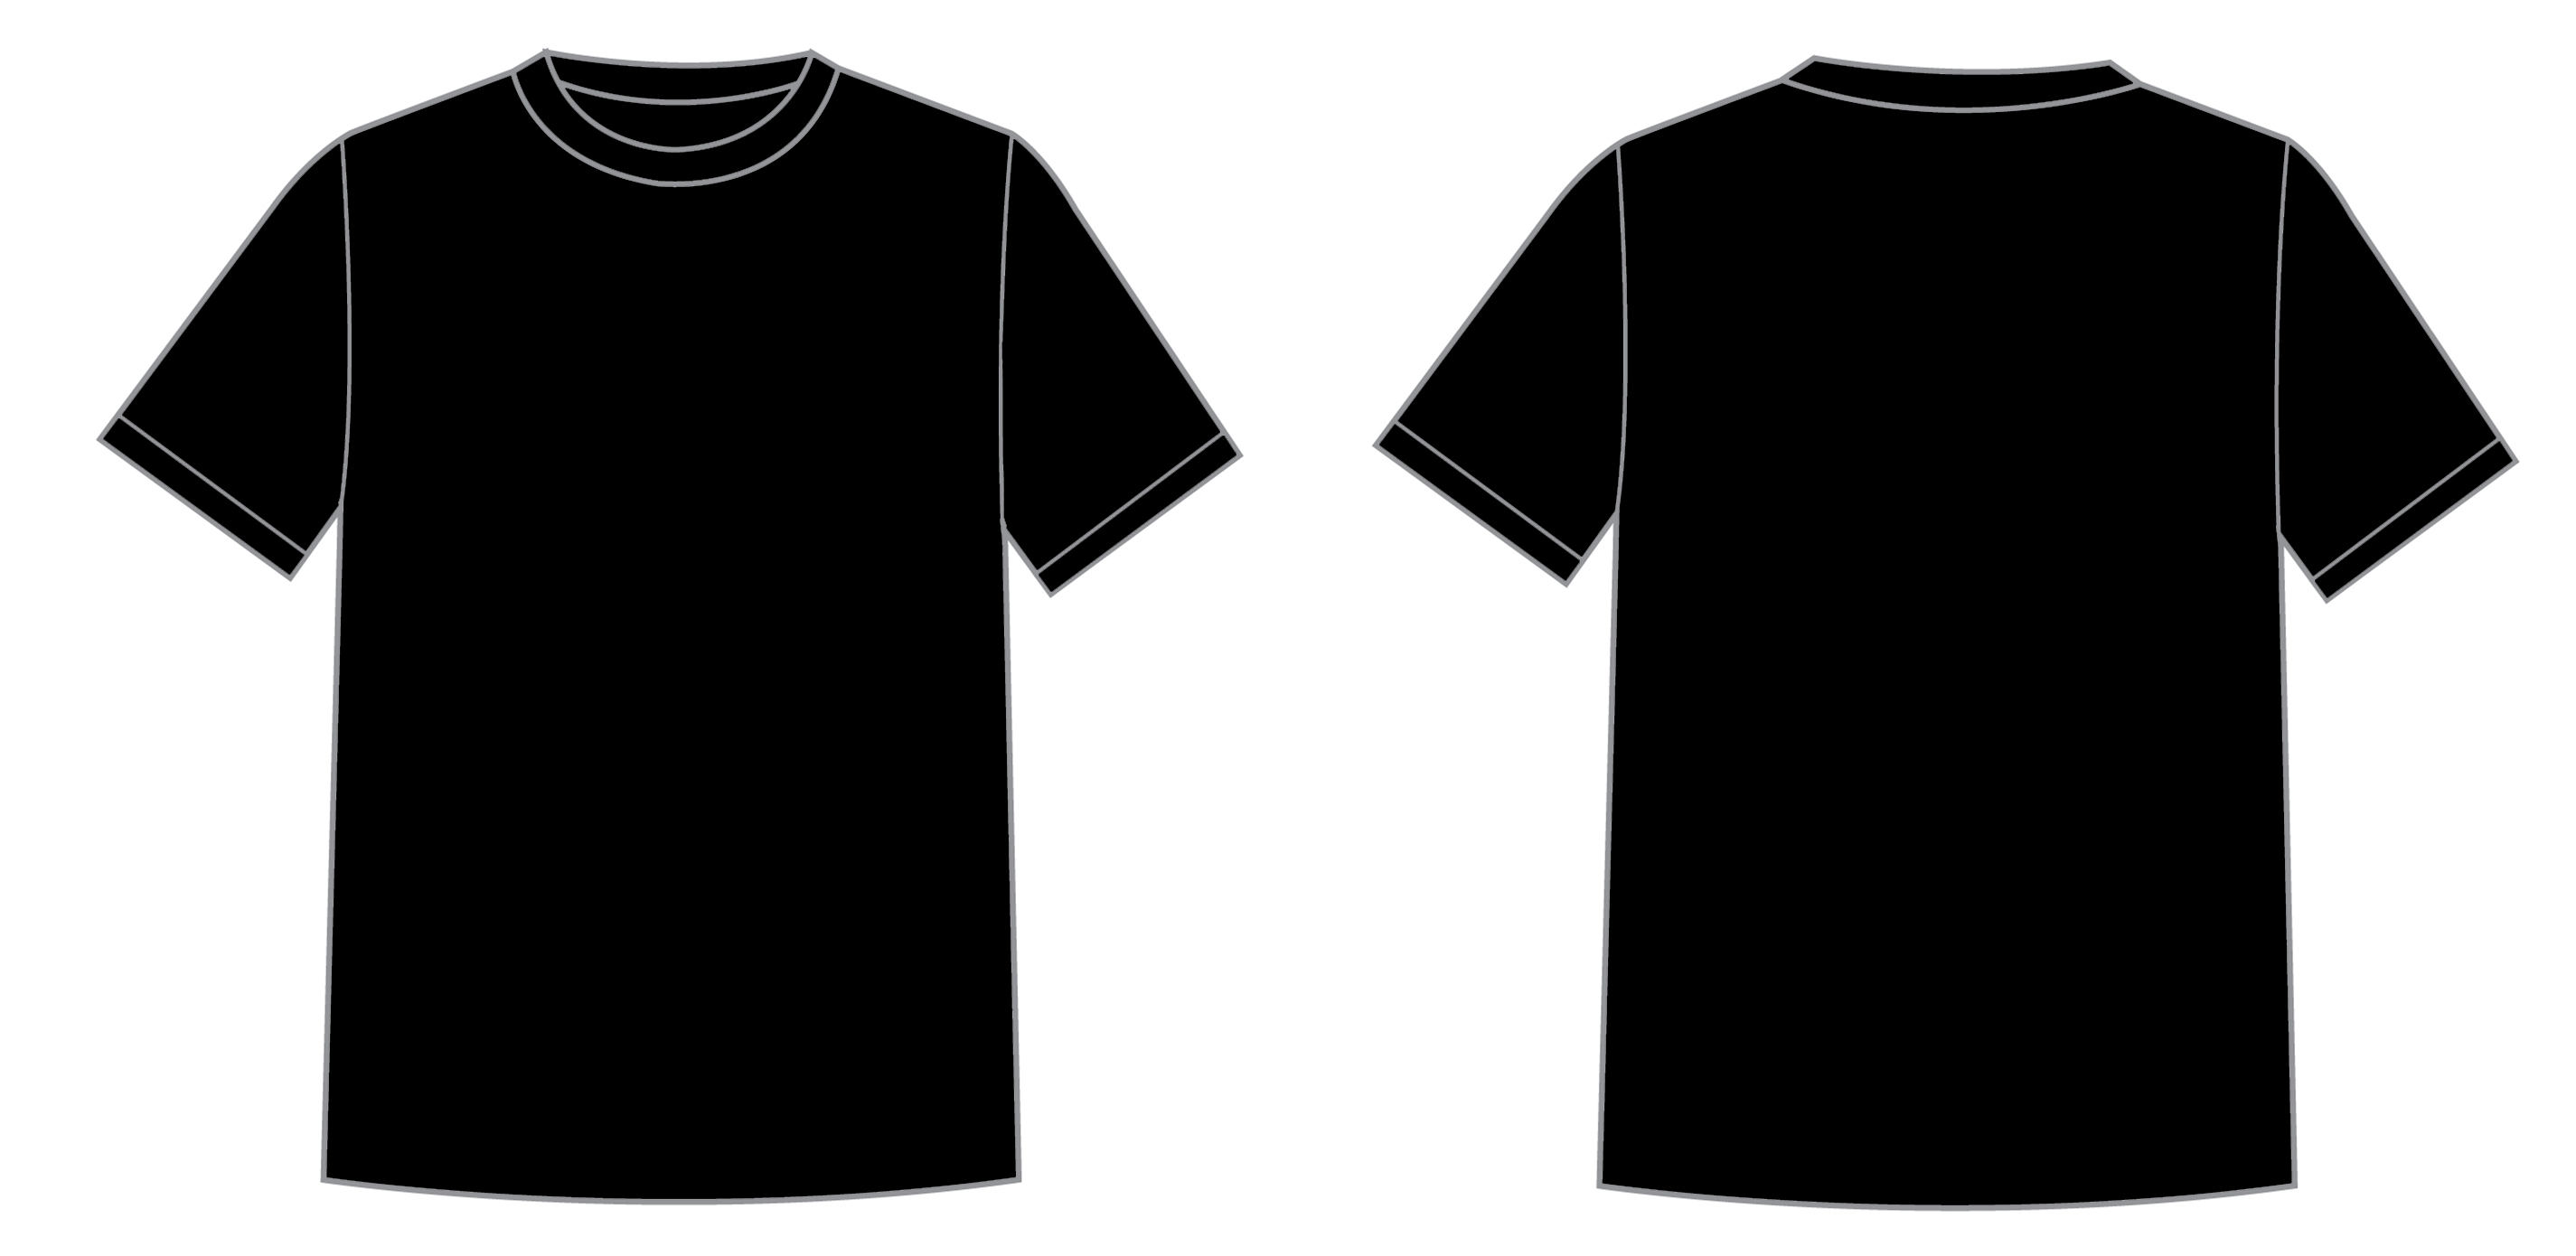 women u0026 39 s plain black t shirt 3 background